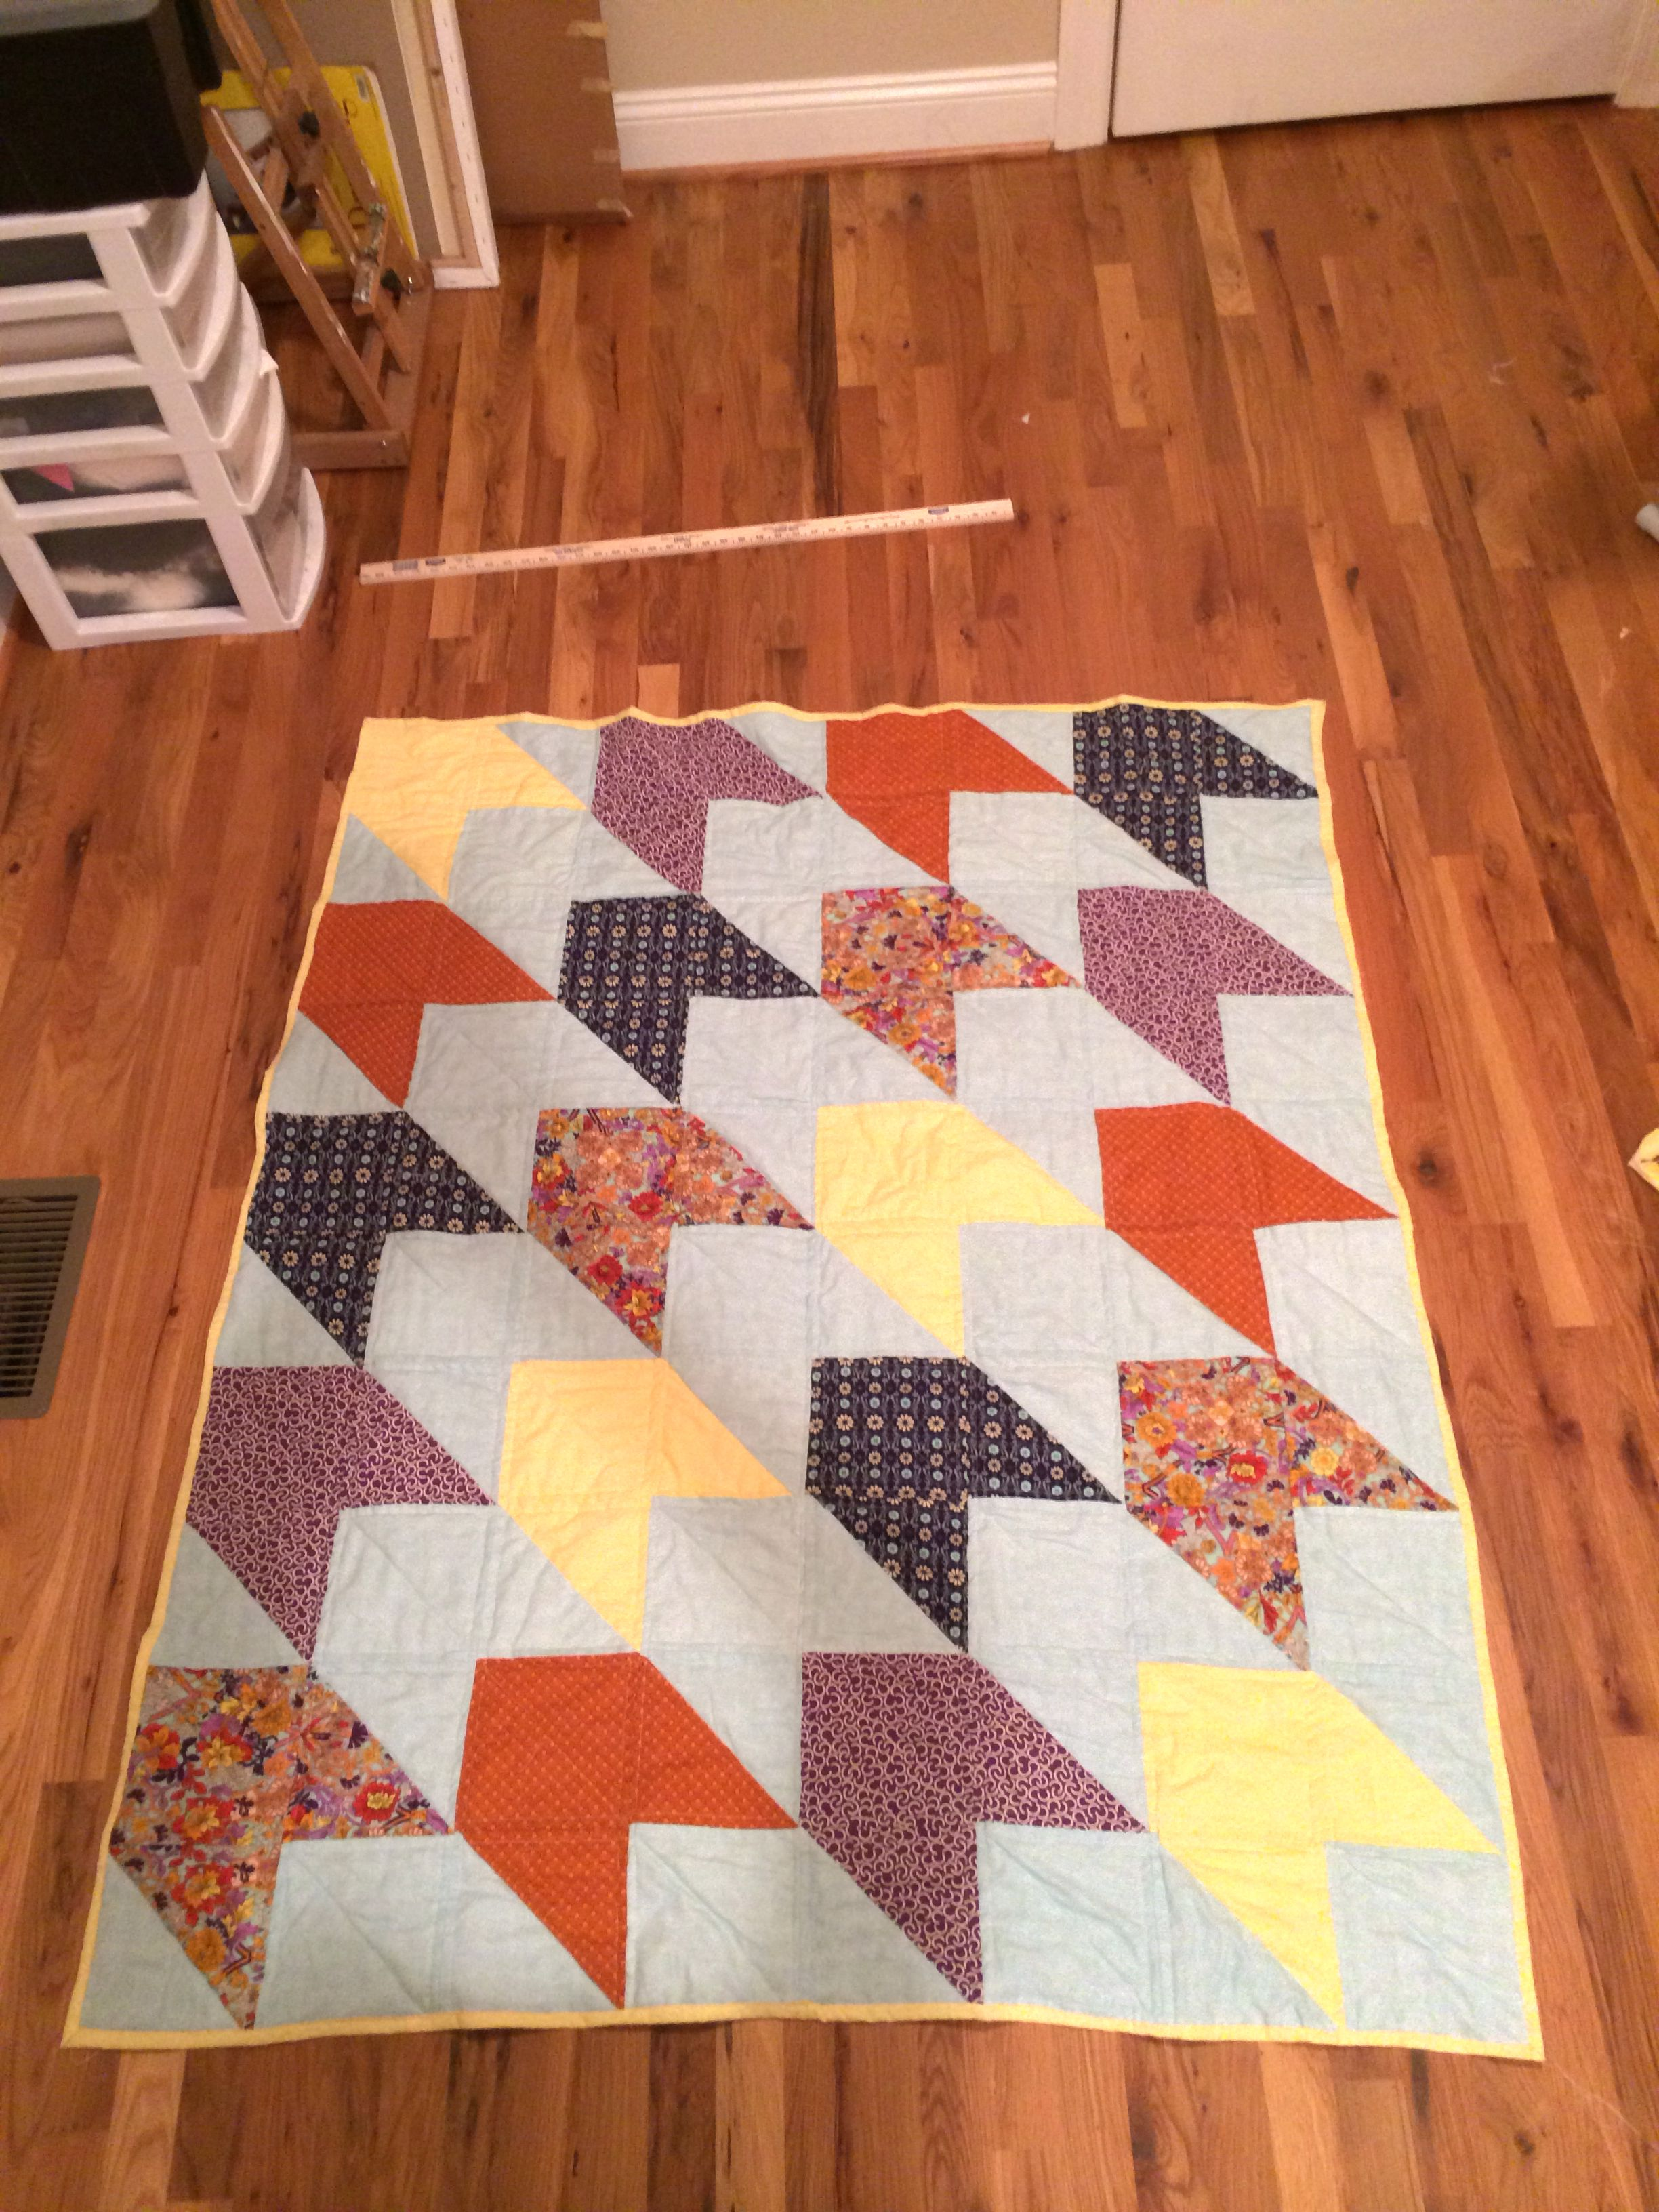 Finished Lap of Luxe quilt. Pattern by quilt dad. Made for my ... : quilt dad patterns - Adamdwight.com